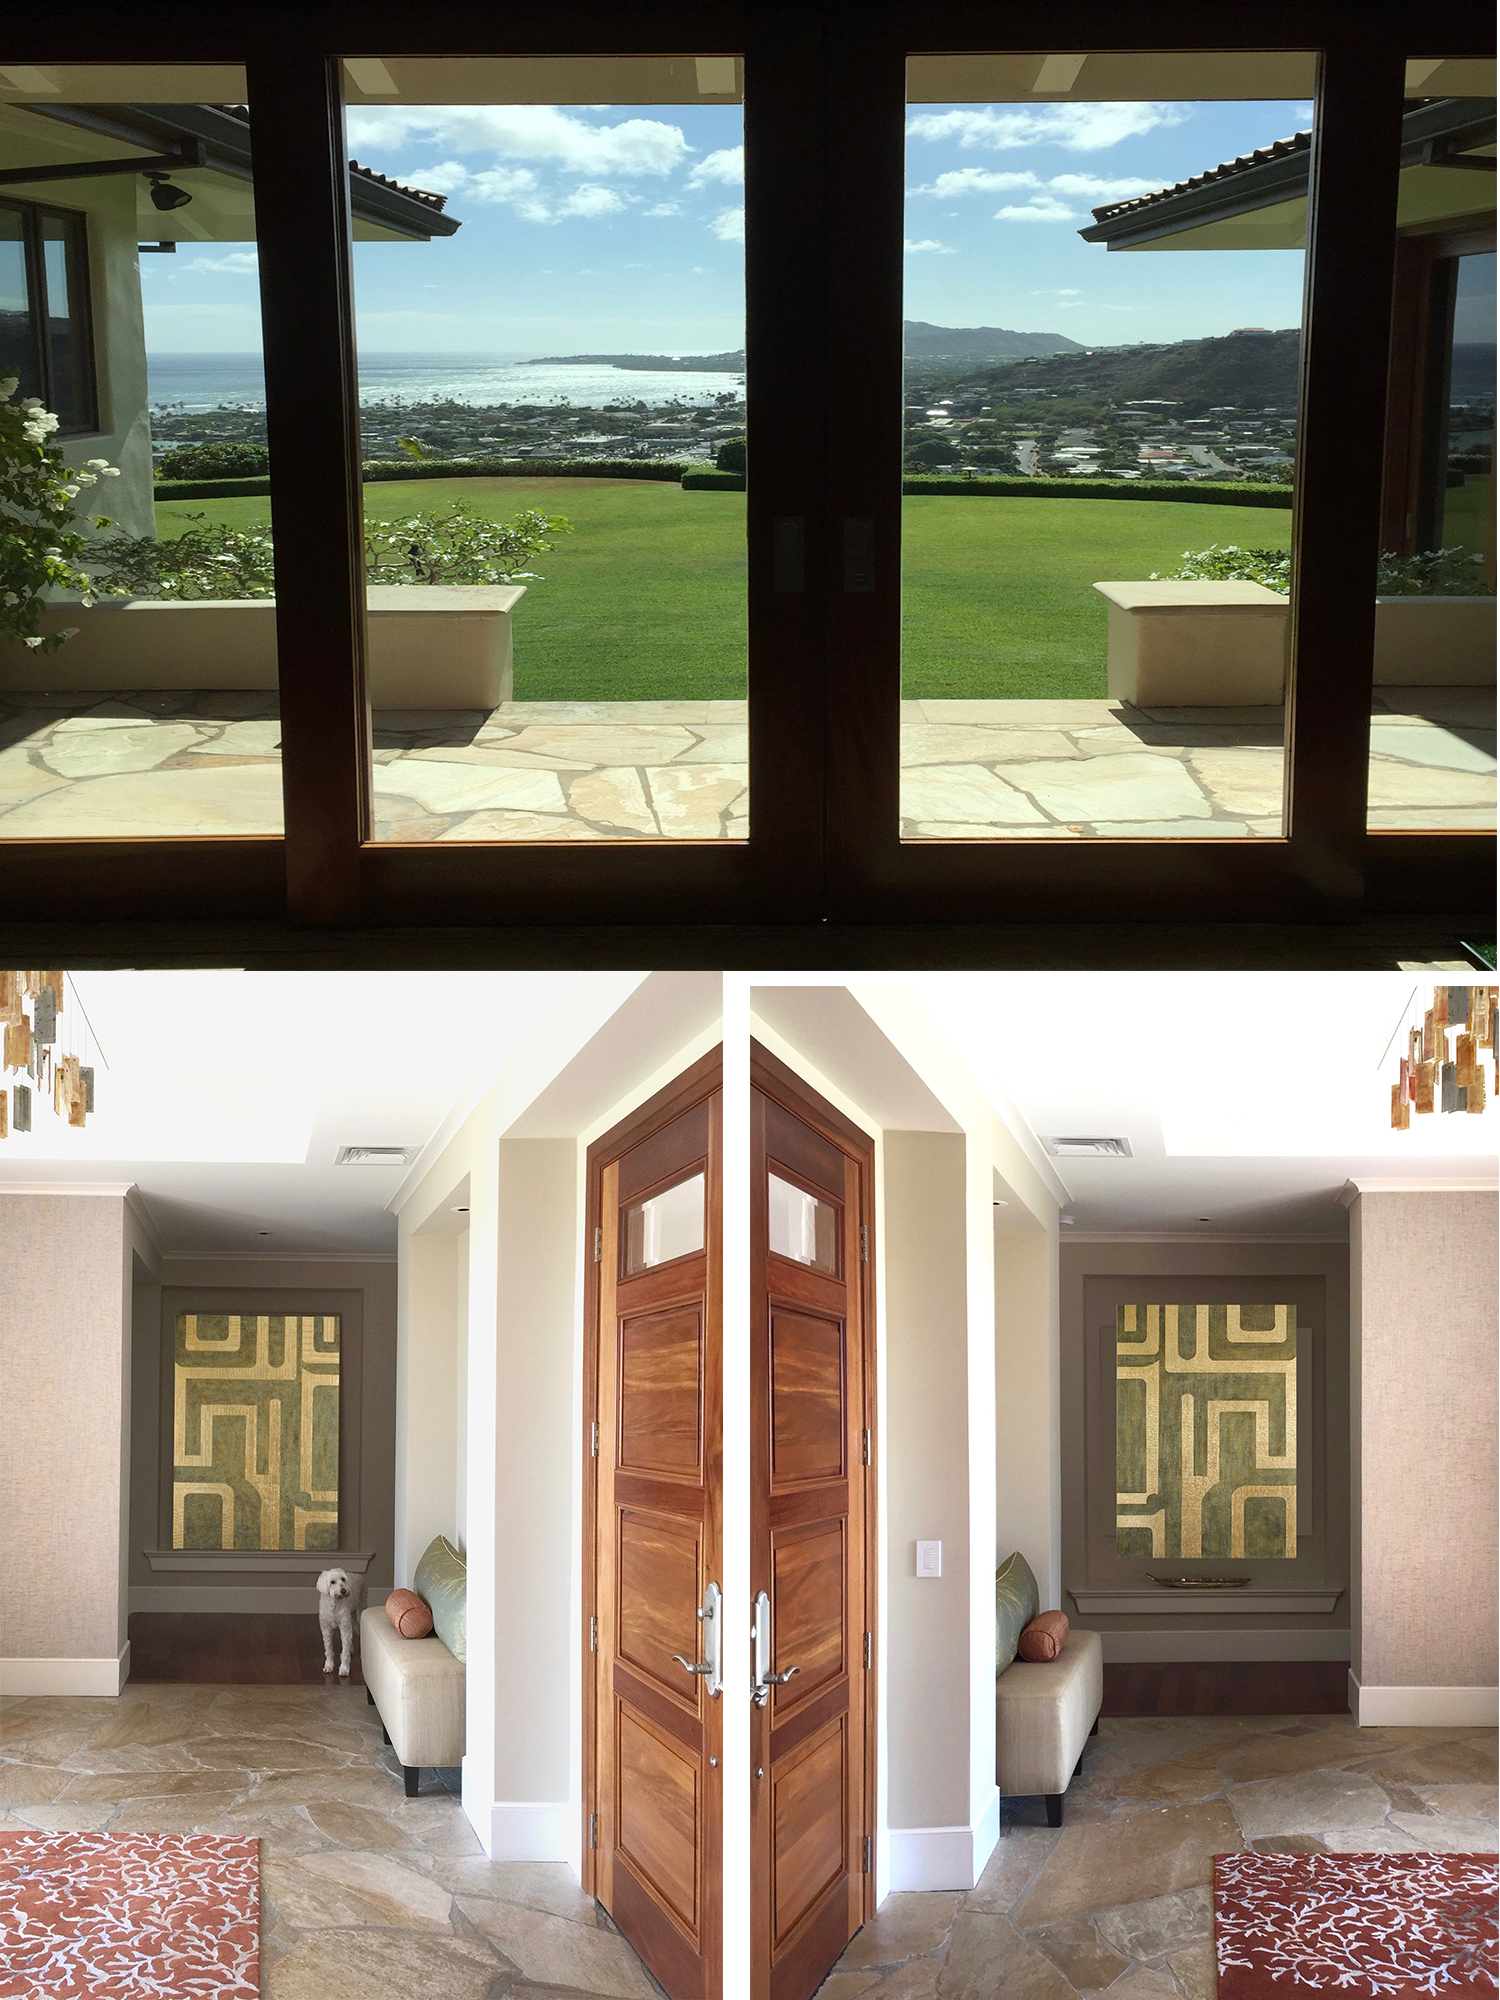 Kaimana-Hila 1 (left) & 2 (right) flank the entry foyer in this beautiful home, directly across from Diamond Head.